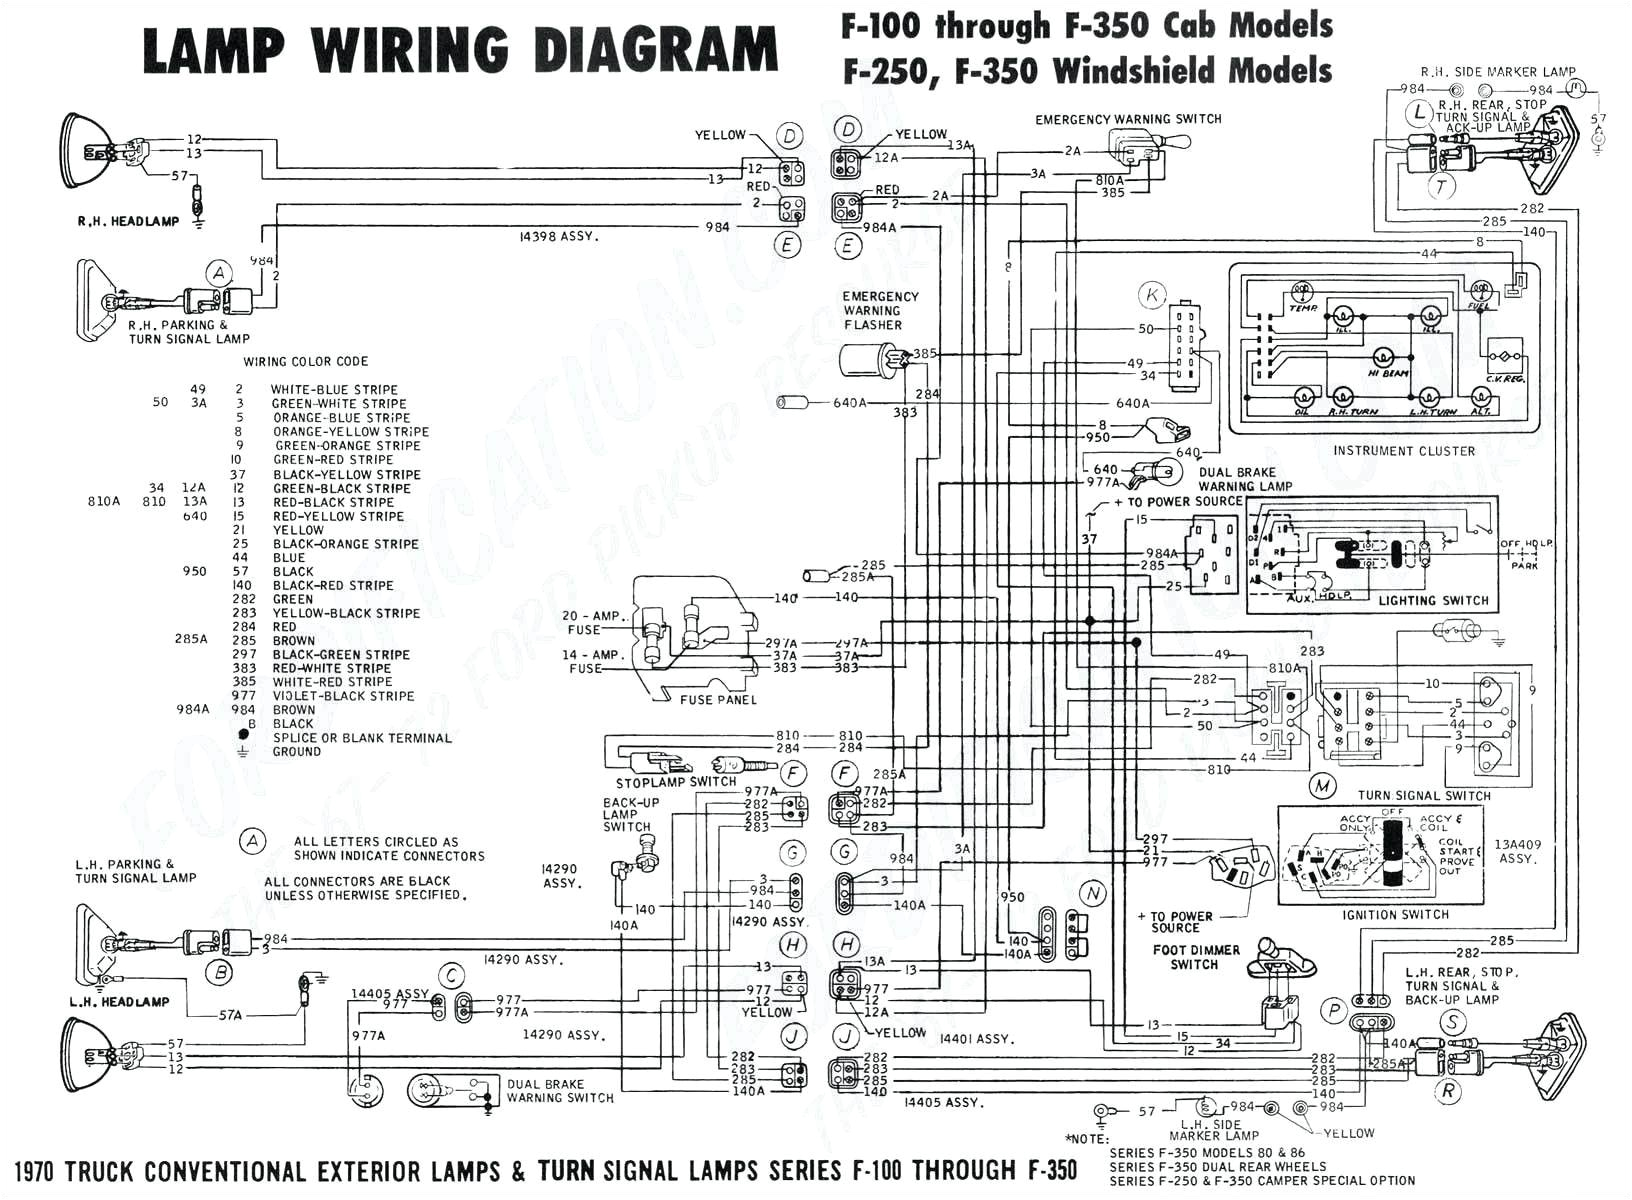 1996 Jeep Cherokee Wiring Diagram Free New Wiring Diagram Immersion Heater Switch Diagram Design